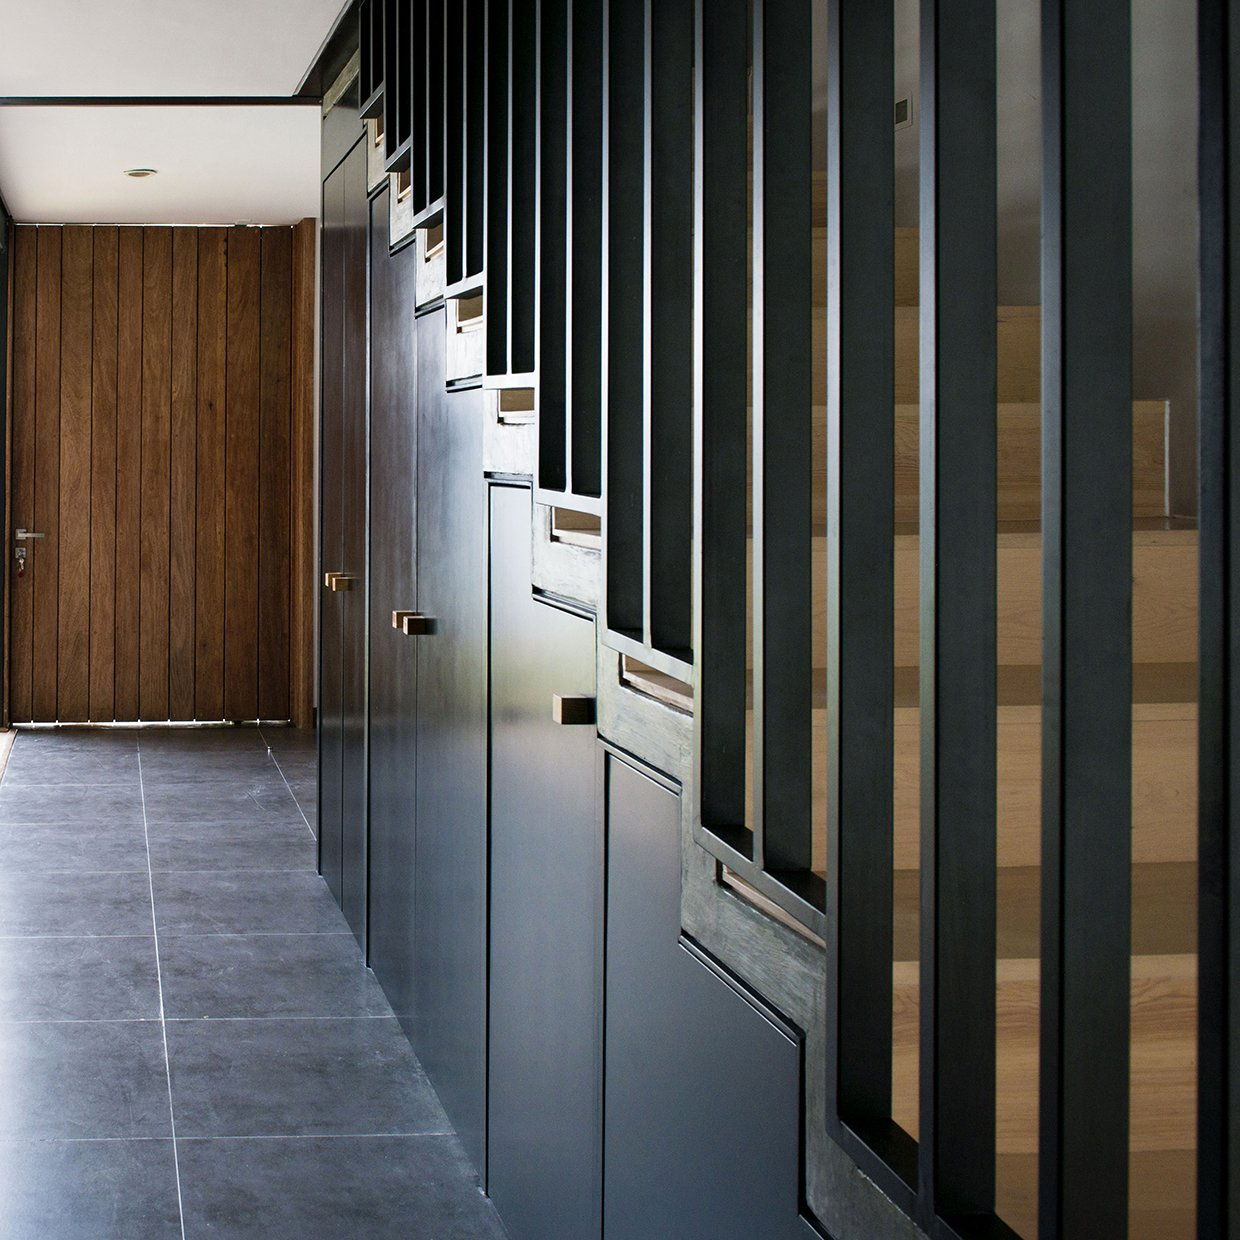 Stairs / Under stairs Closet Tagged: Metal Railing, Storage Room, Concrete Tread, Wood Tread, and Under Stairs Storage Type.  Casa MA by e|arquitectos